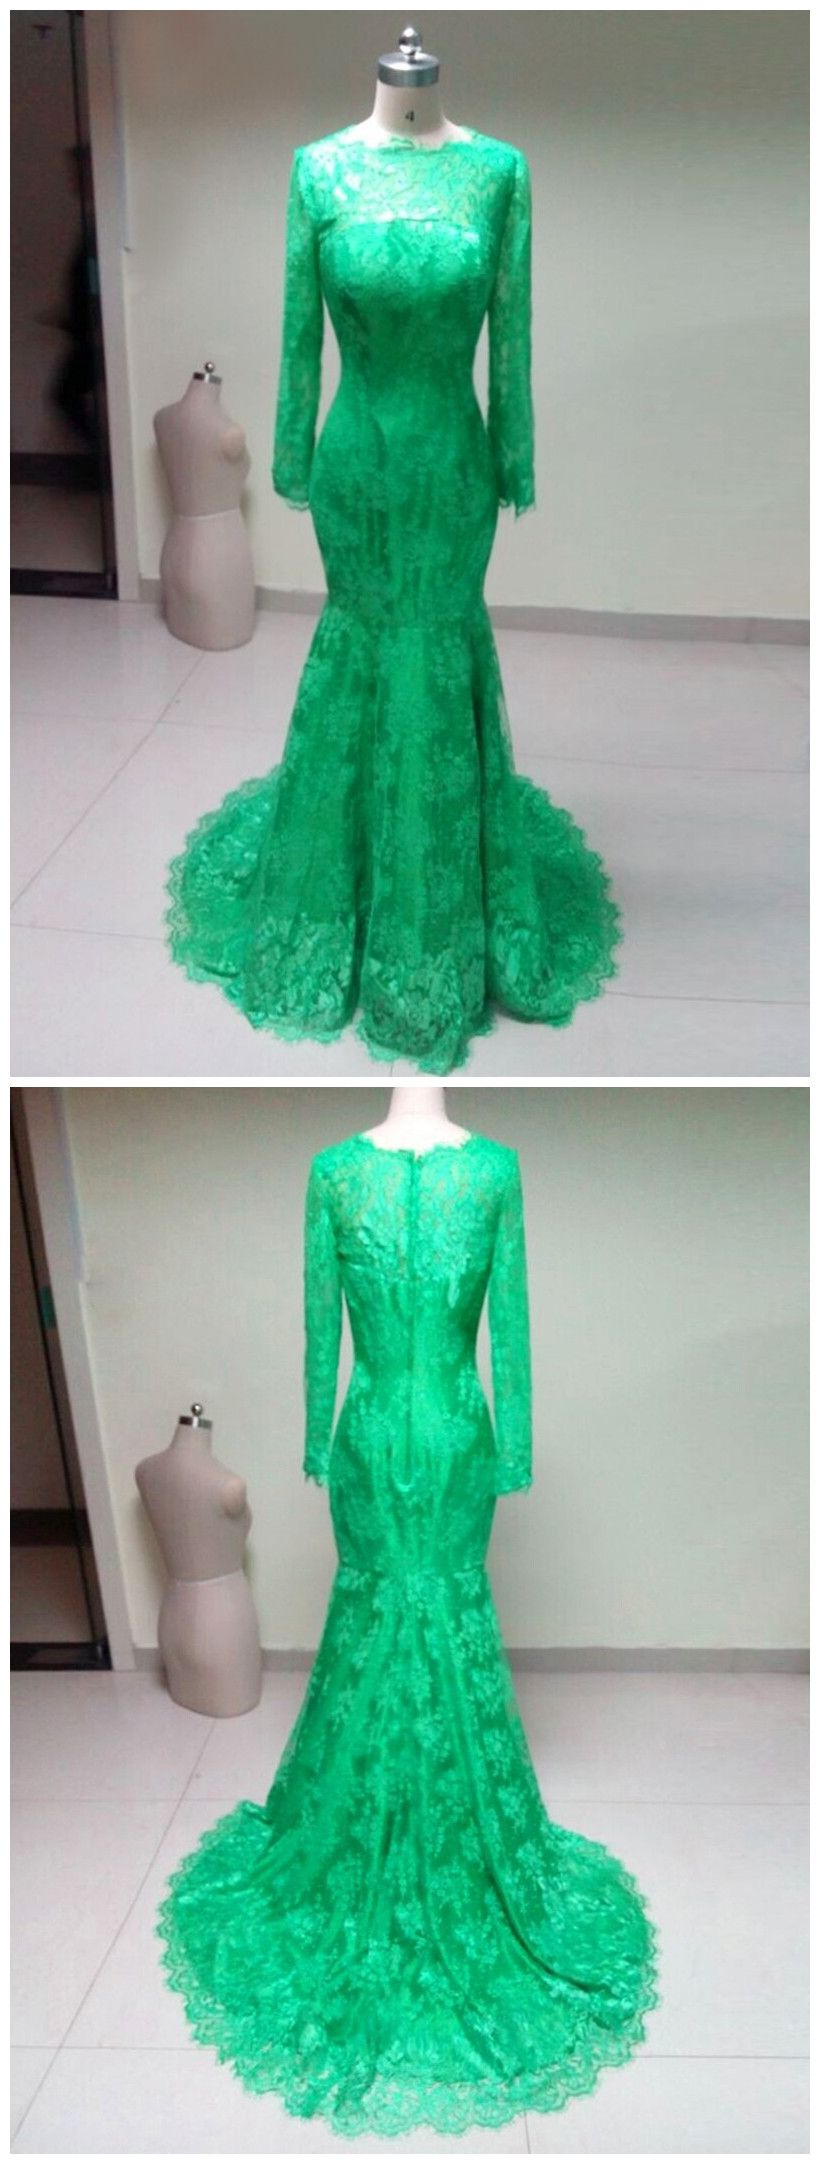 High neck elegant long sleeves green lace mermaid prom dresses